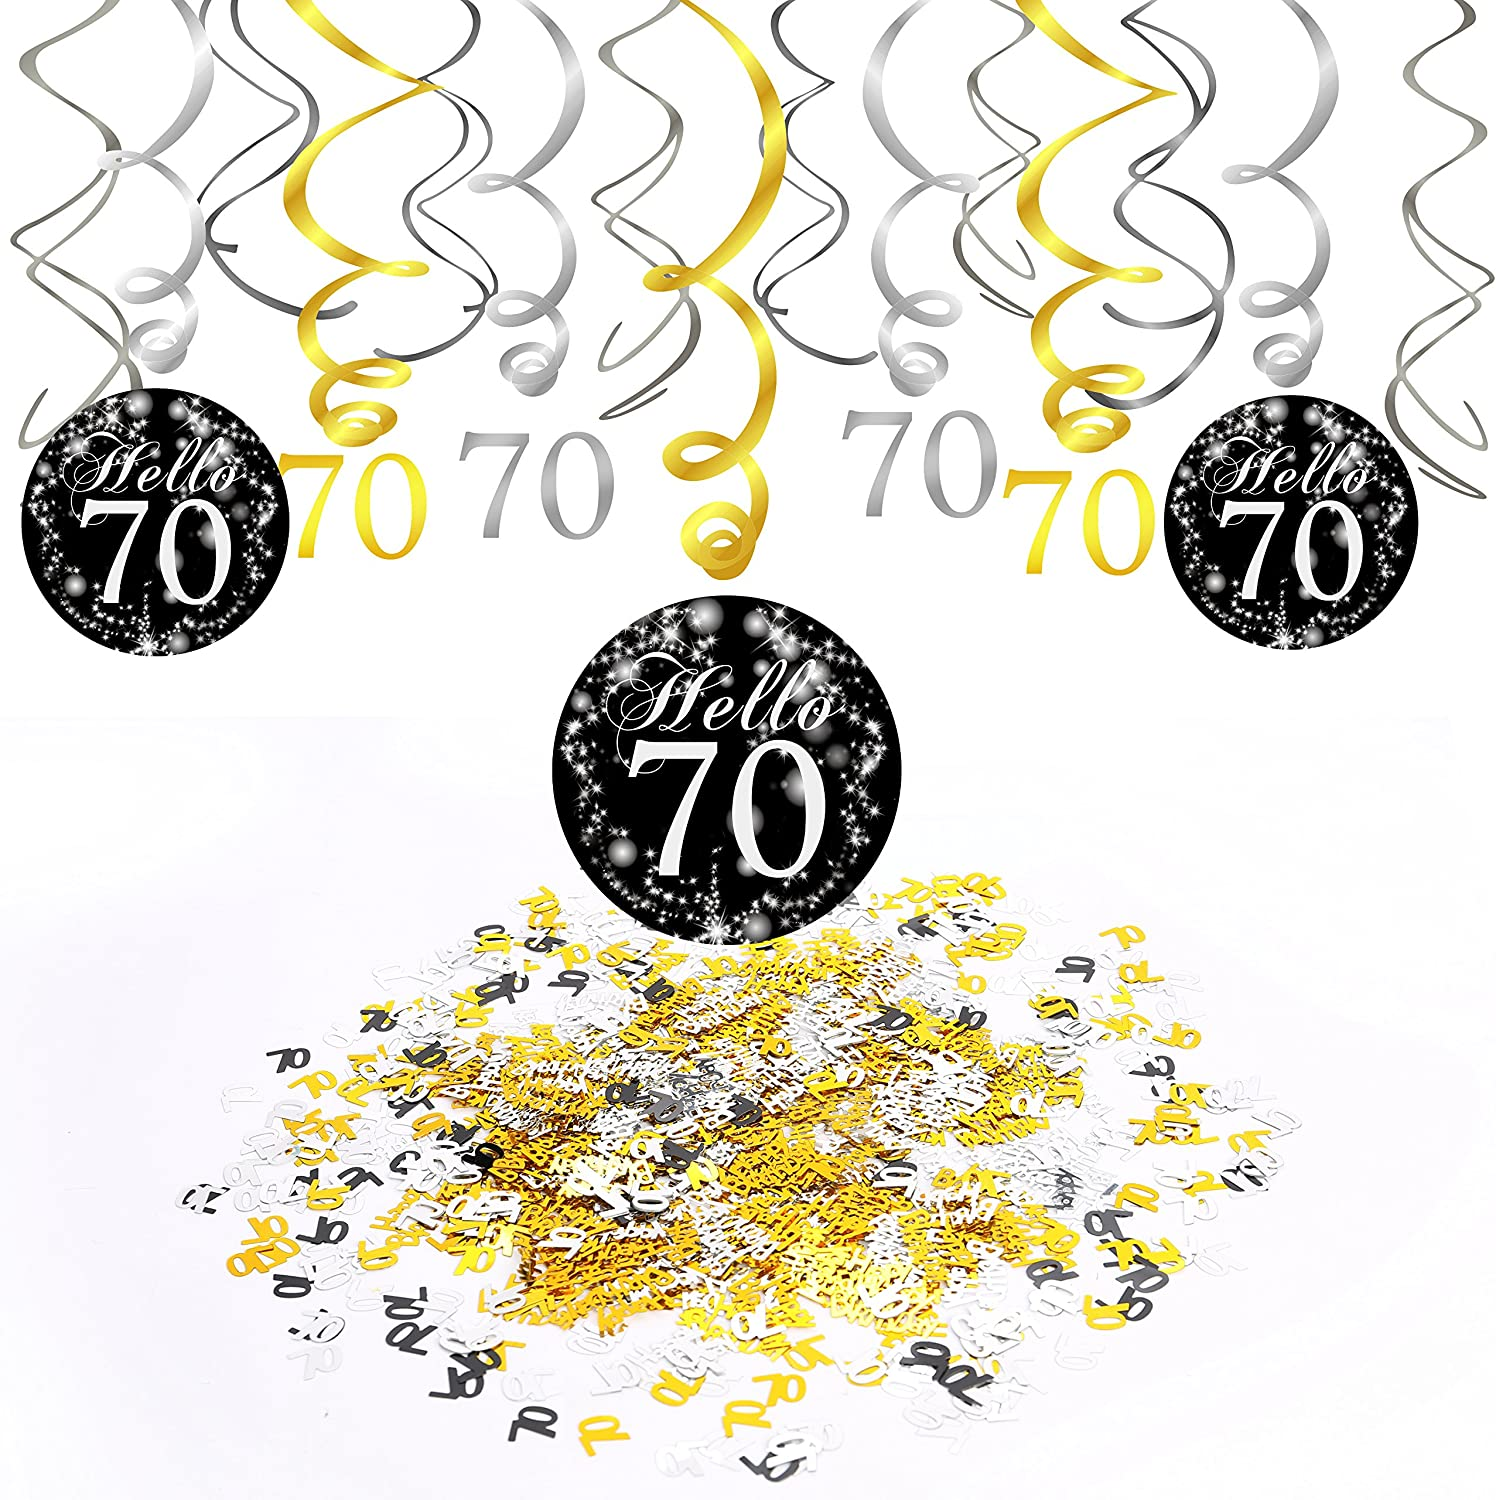 70th Birthday Party Hanging Swirls Ceiling Decorations Shiny Celebration 70 Hanging Swirls Decorations for 70 Years Old Party Supplies 70th Birthday Party Decorations 30 Count